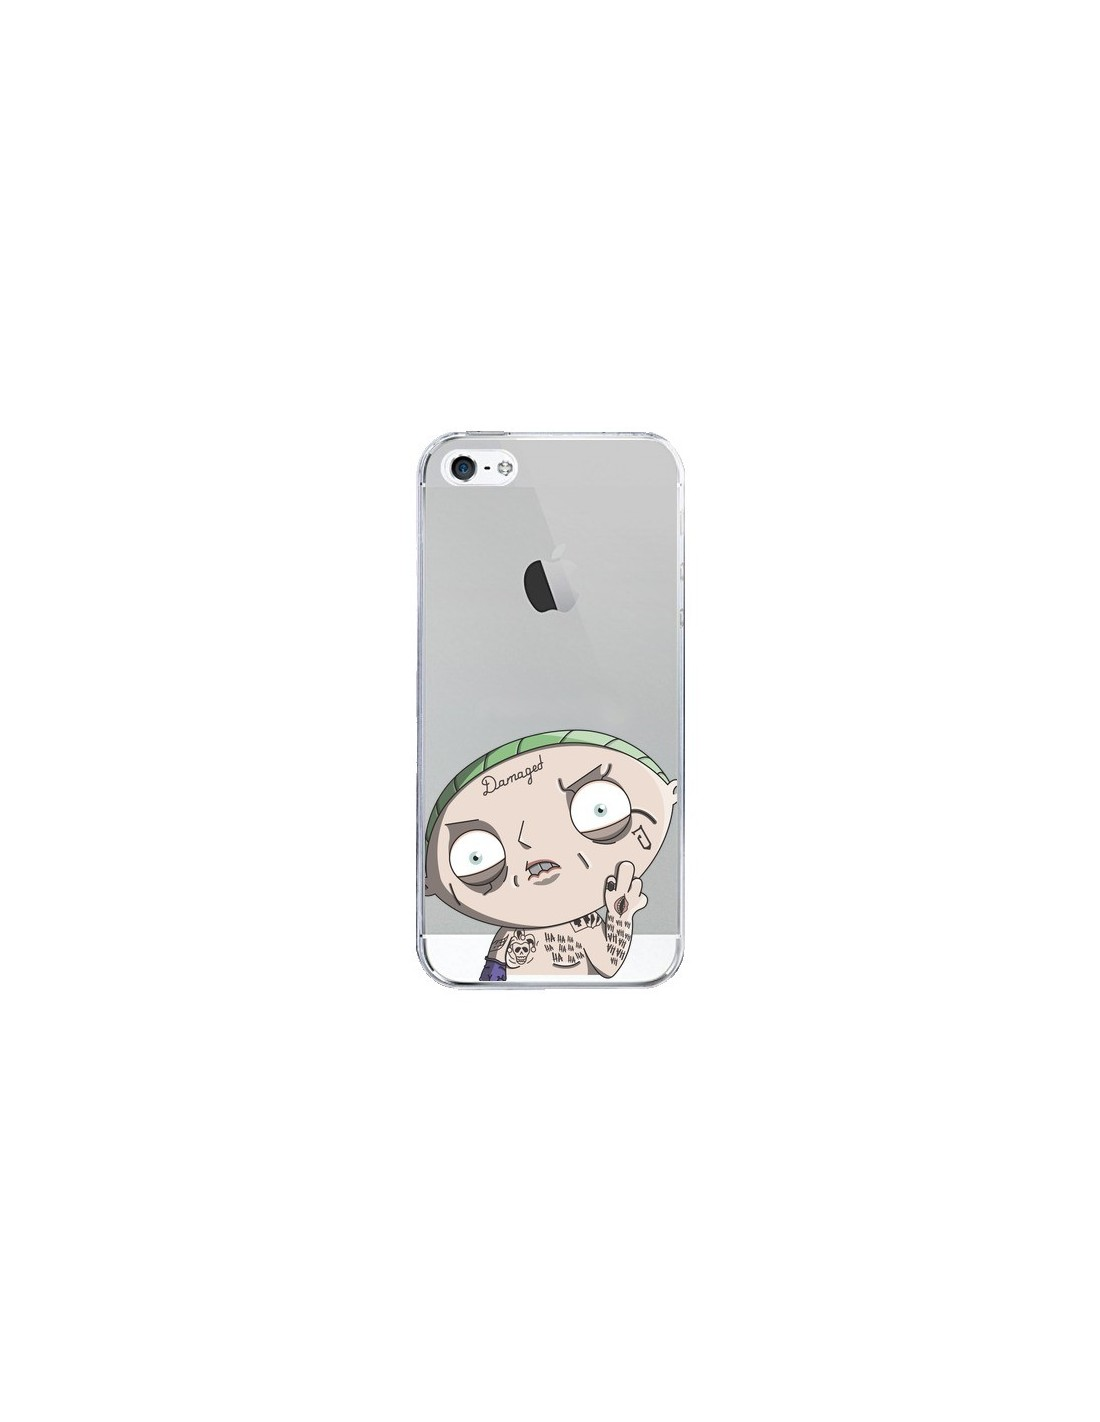 coque stewie joker suicide squad transparente pour iphone 5 5s et se mikadololo. Black Bedroom Furniture Sets. Home Design Ideas